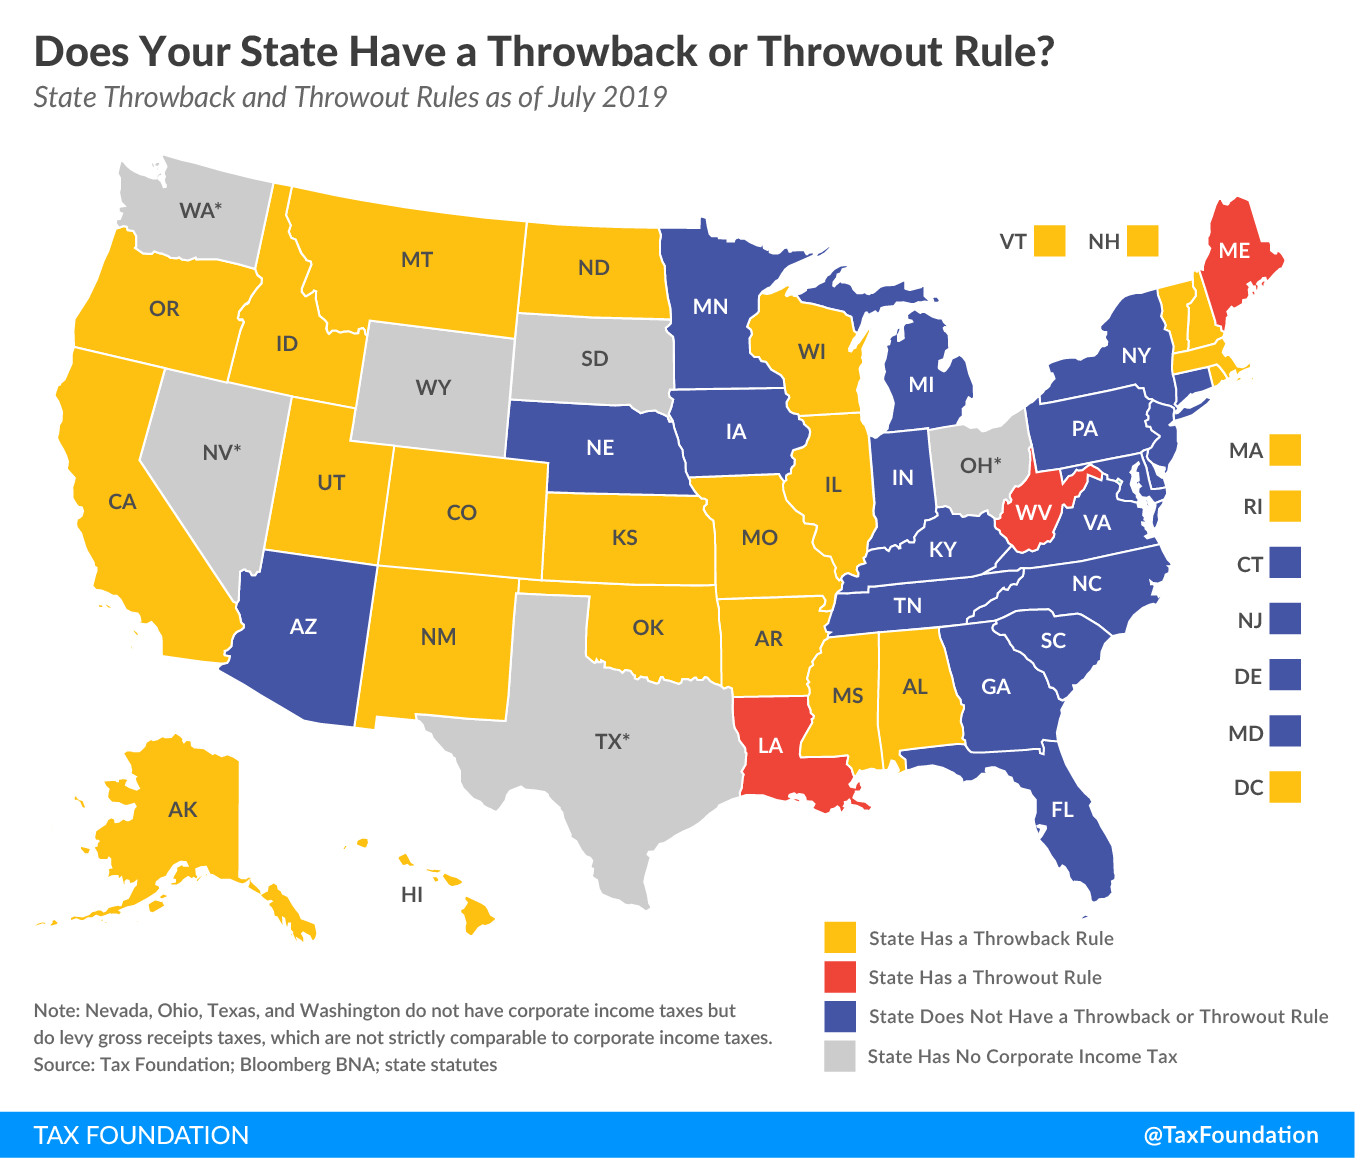 State throwback rules, state throwout rules, corporate taxation, economic nexus, double taxation on corporate income